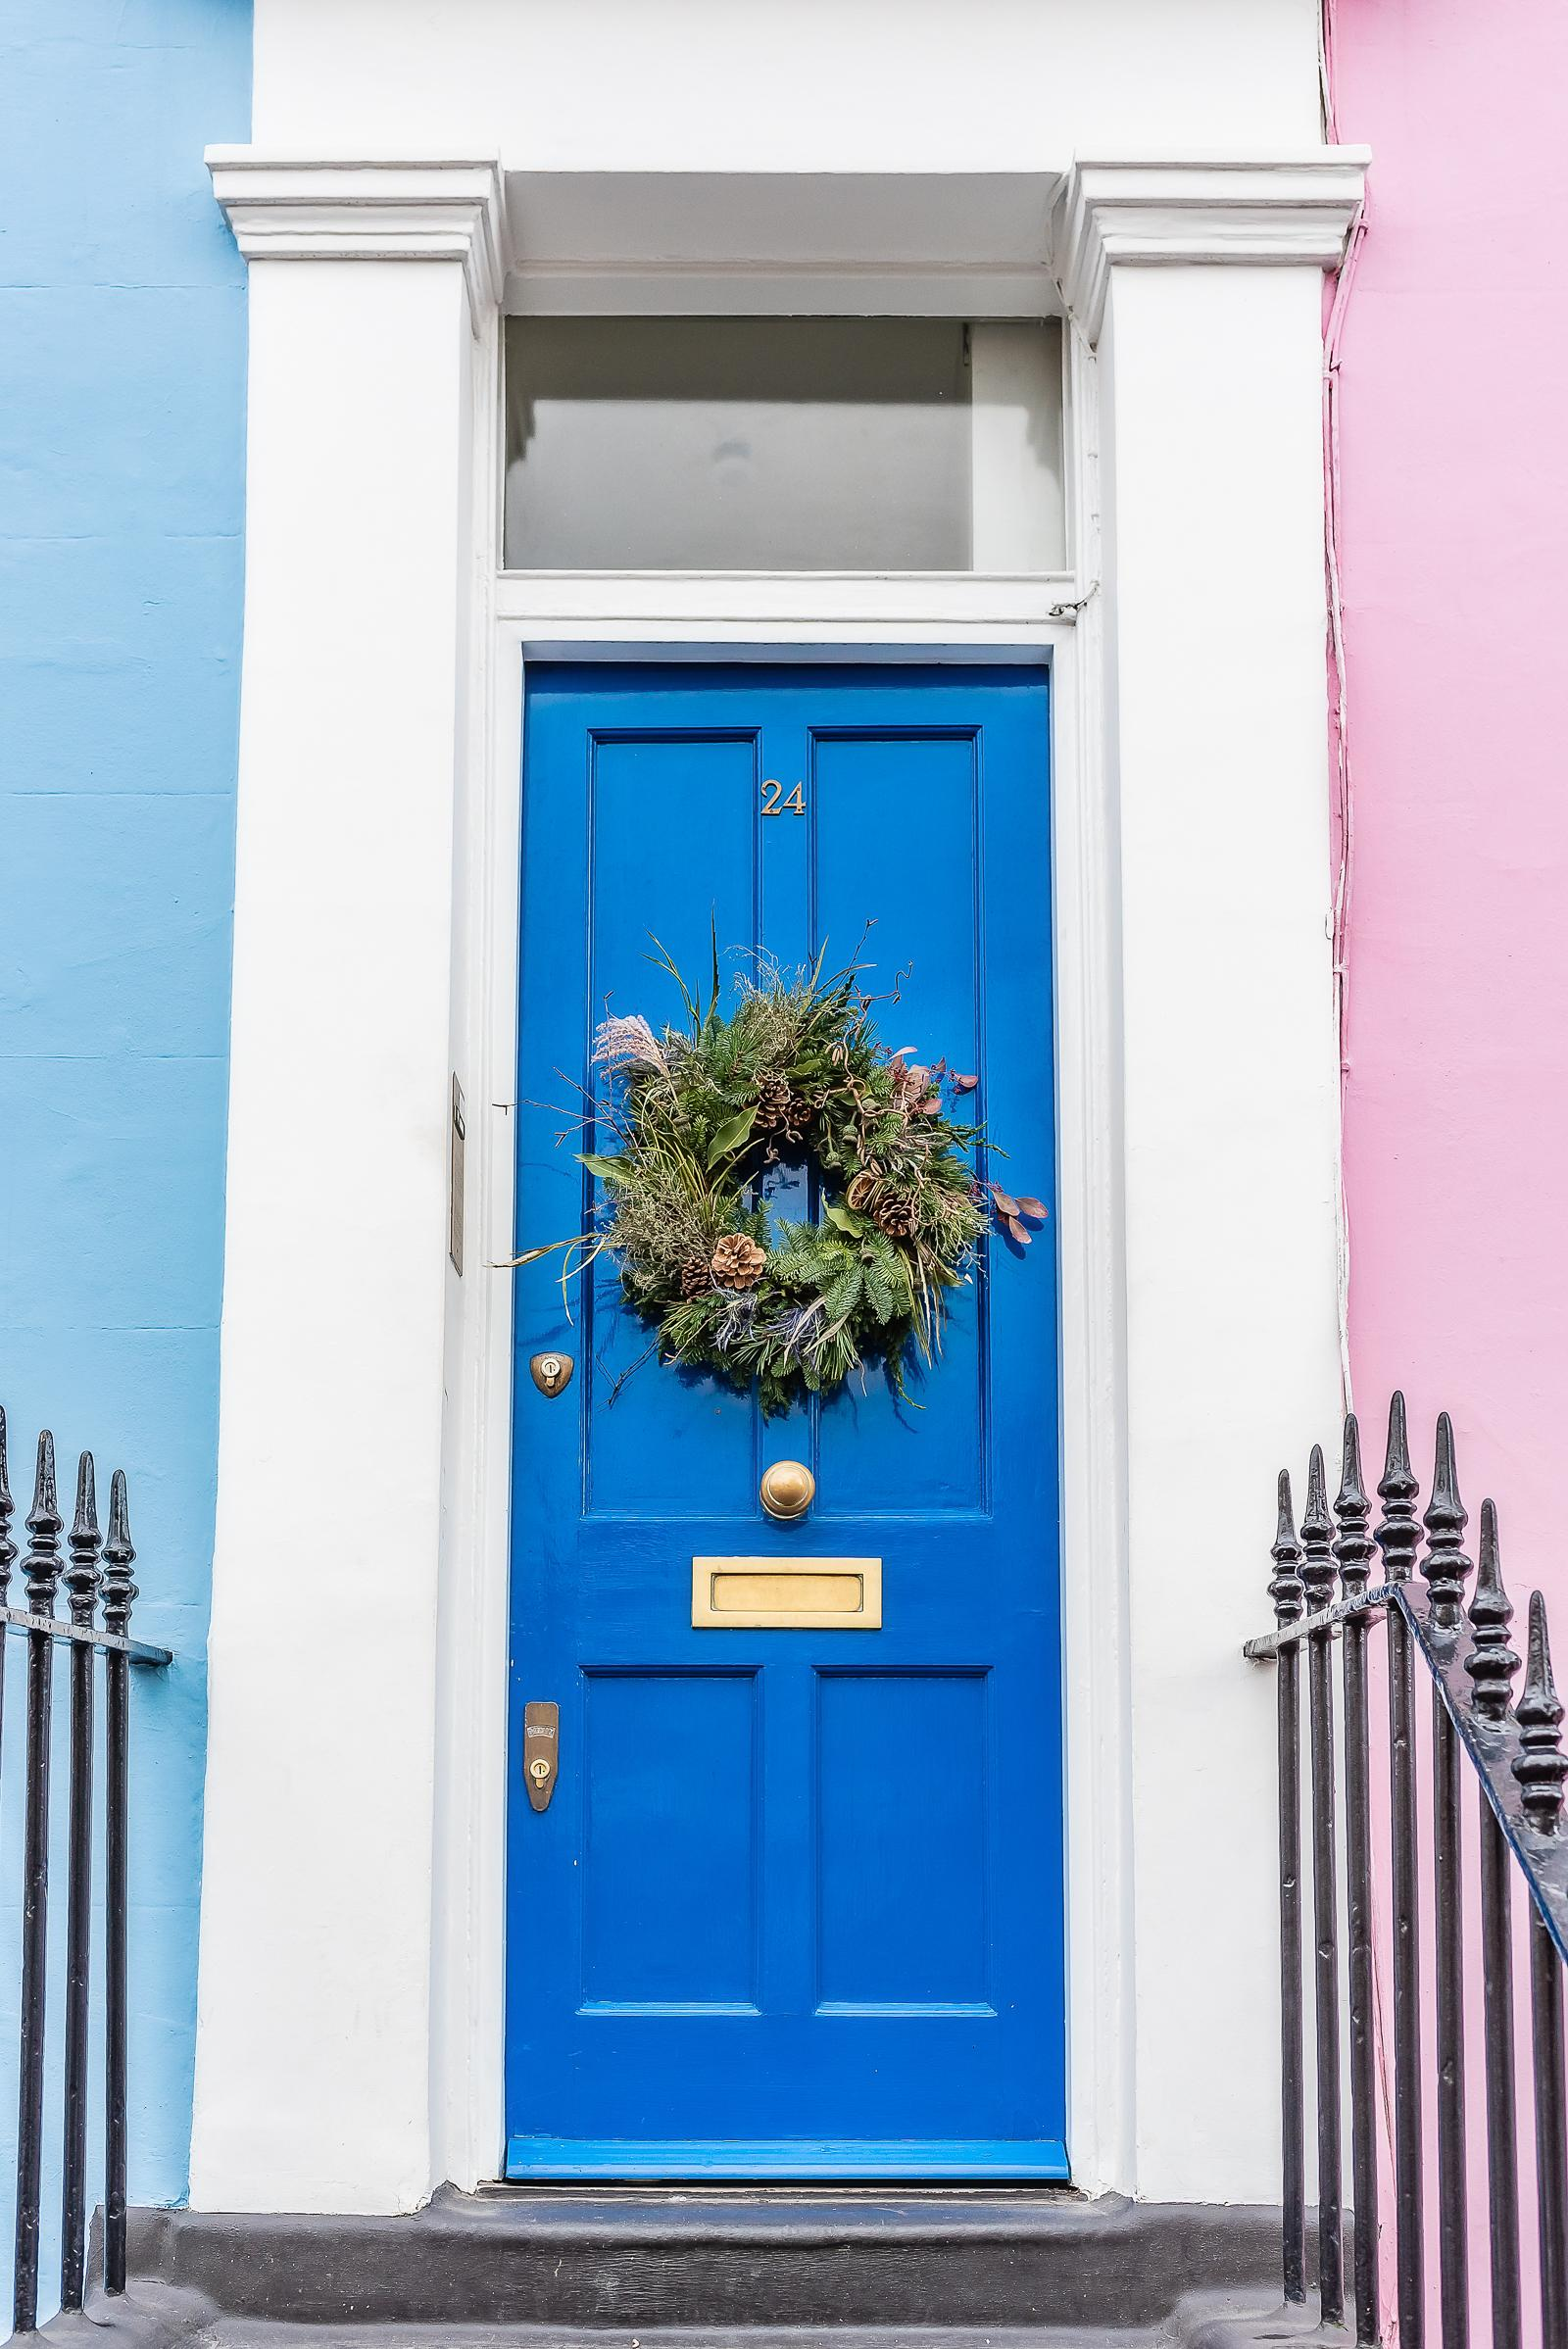 Notting Hill London December 2018